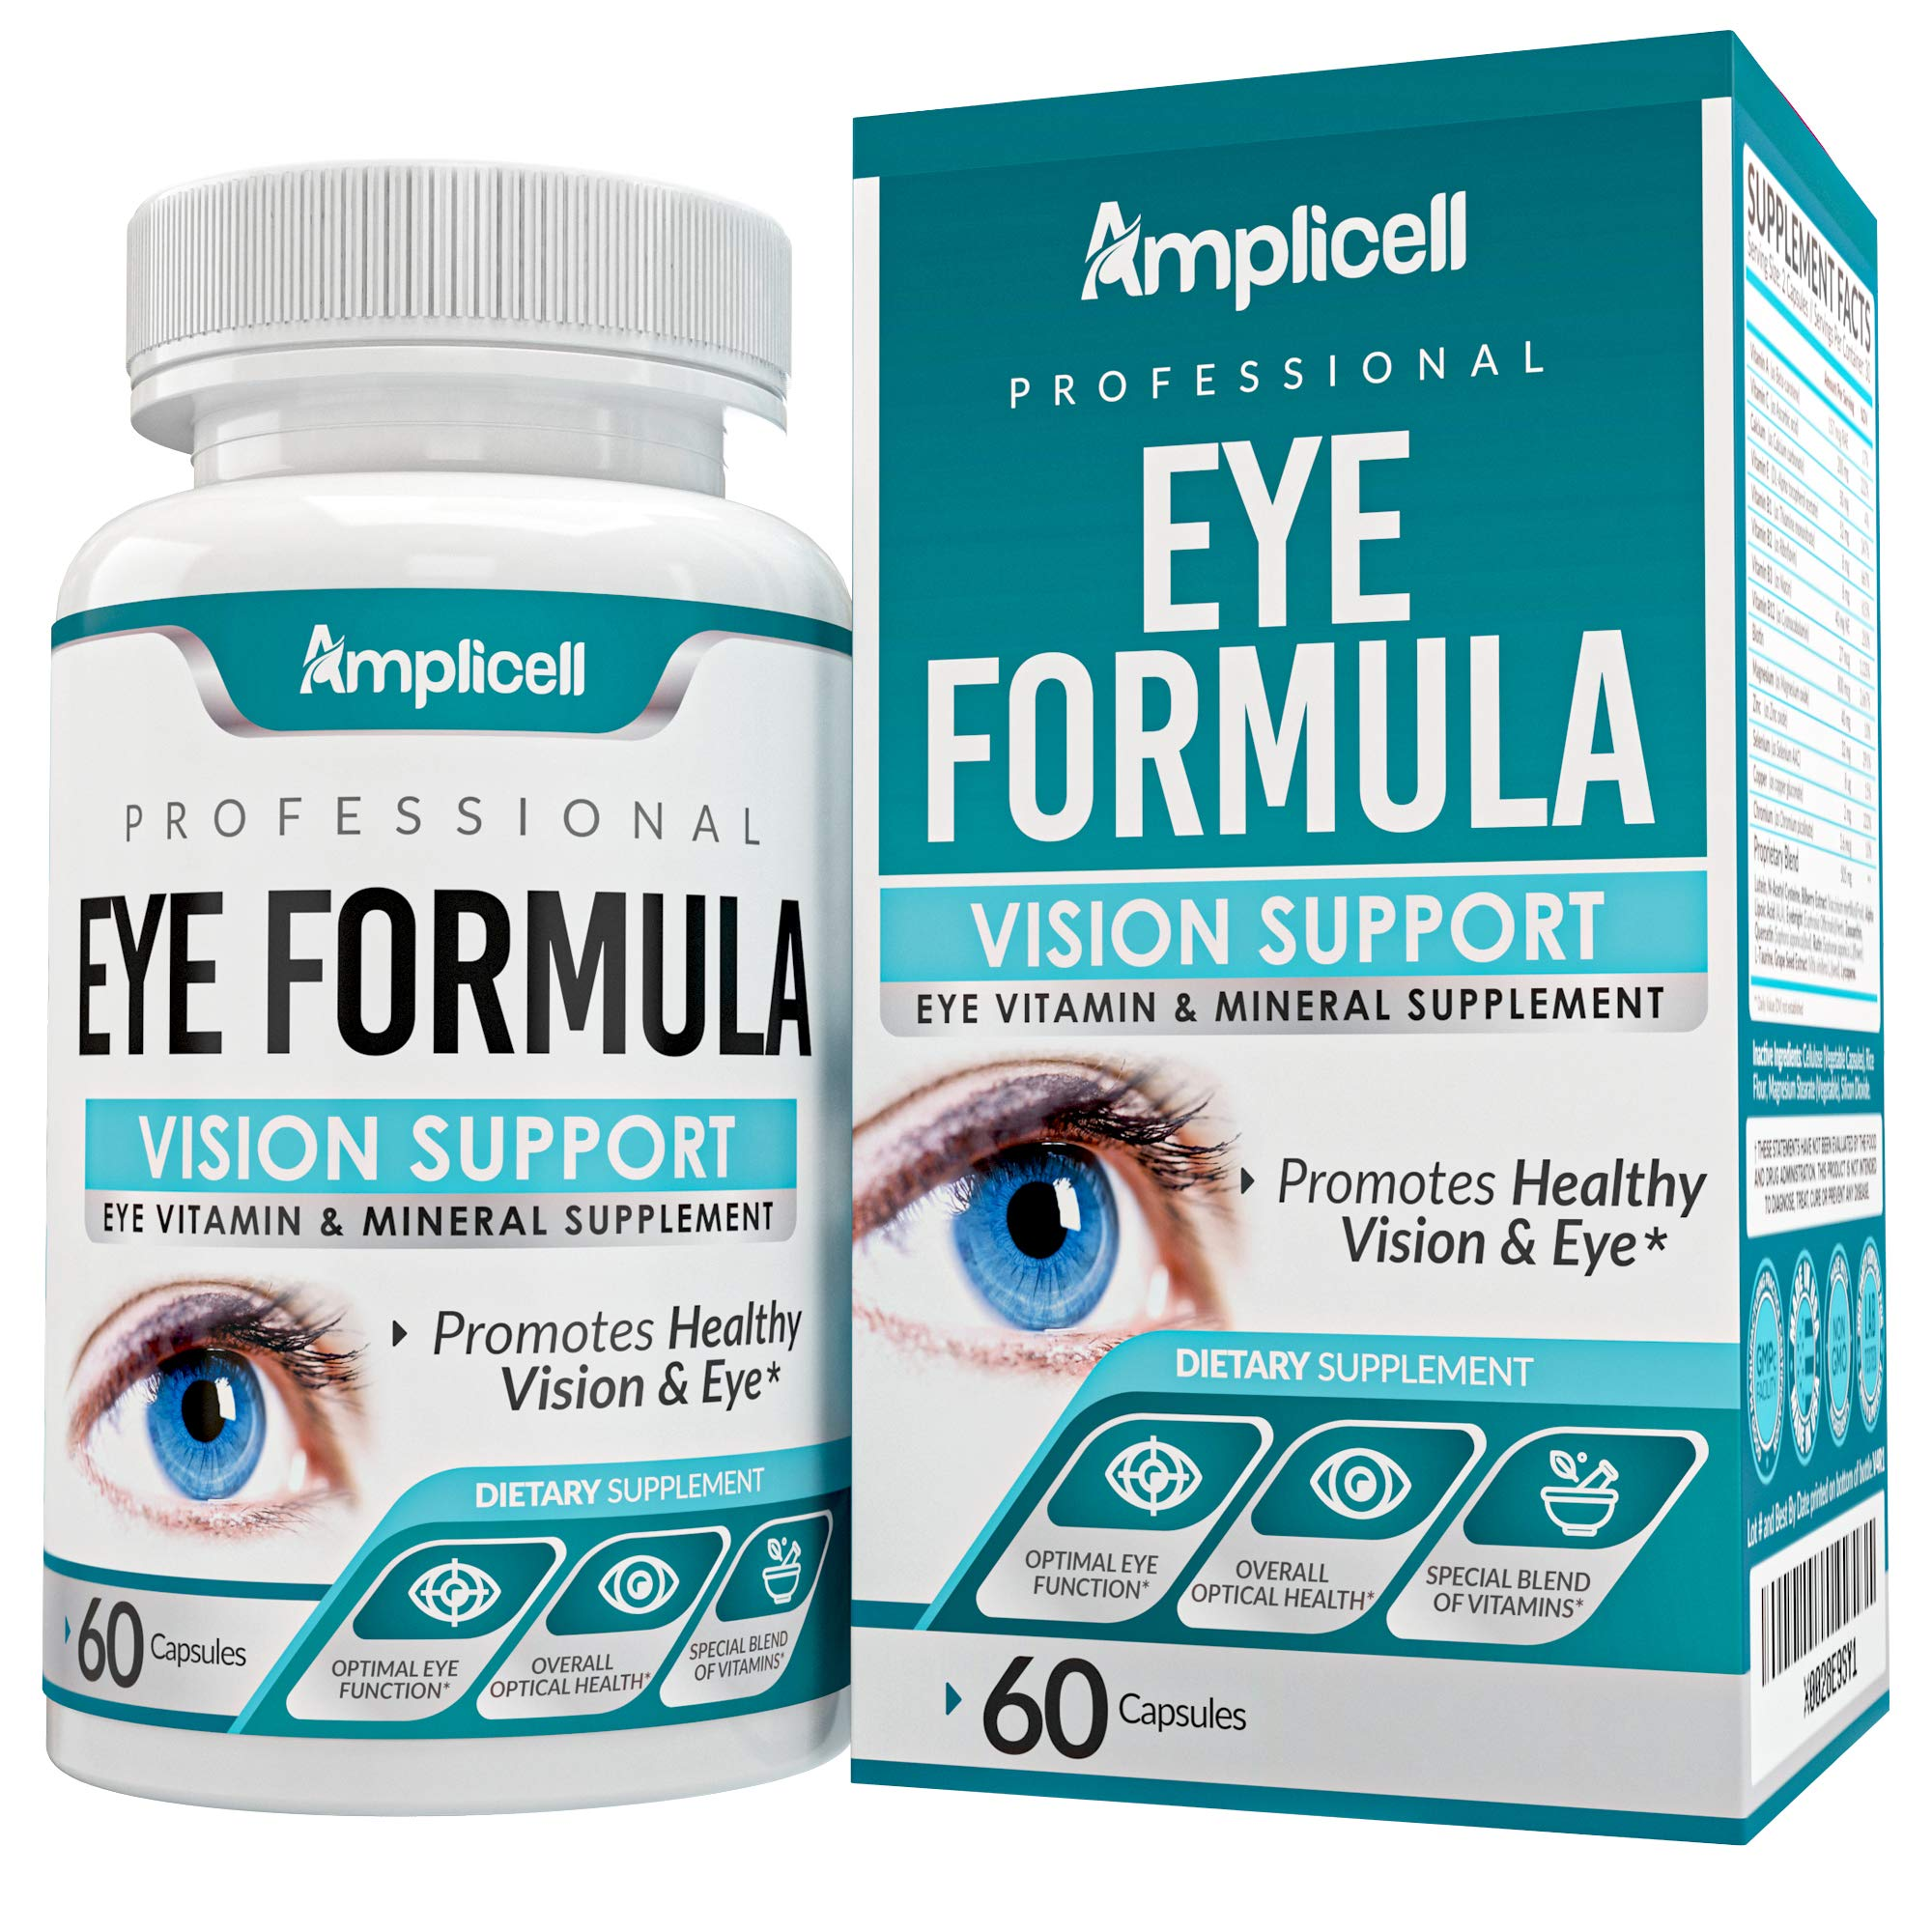 Eye Formula Vision Support - 60 Eye Vitamin Capsules - Daily Eye Vitamins with Lutein & Zeaxanthin - All-in-One Eye Health Supplement w/ Vitamin A, Vitamin E, Zinc, Calcium & More for Optimum Eye Care